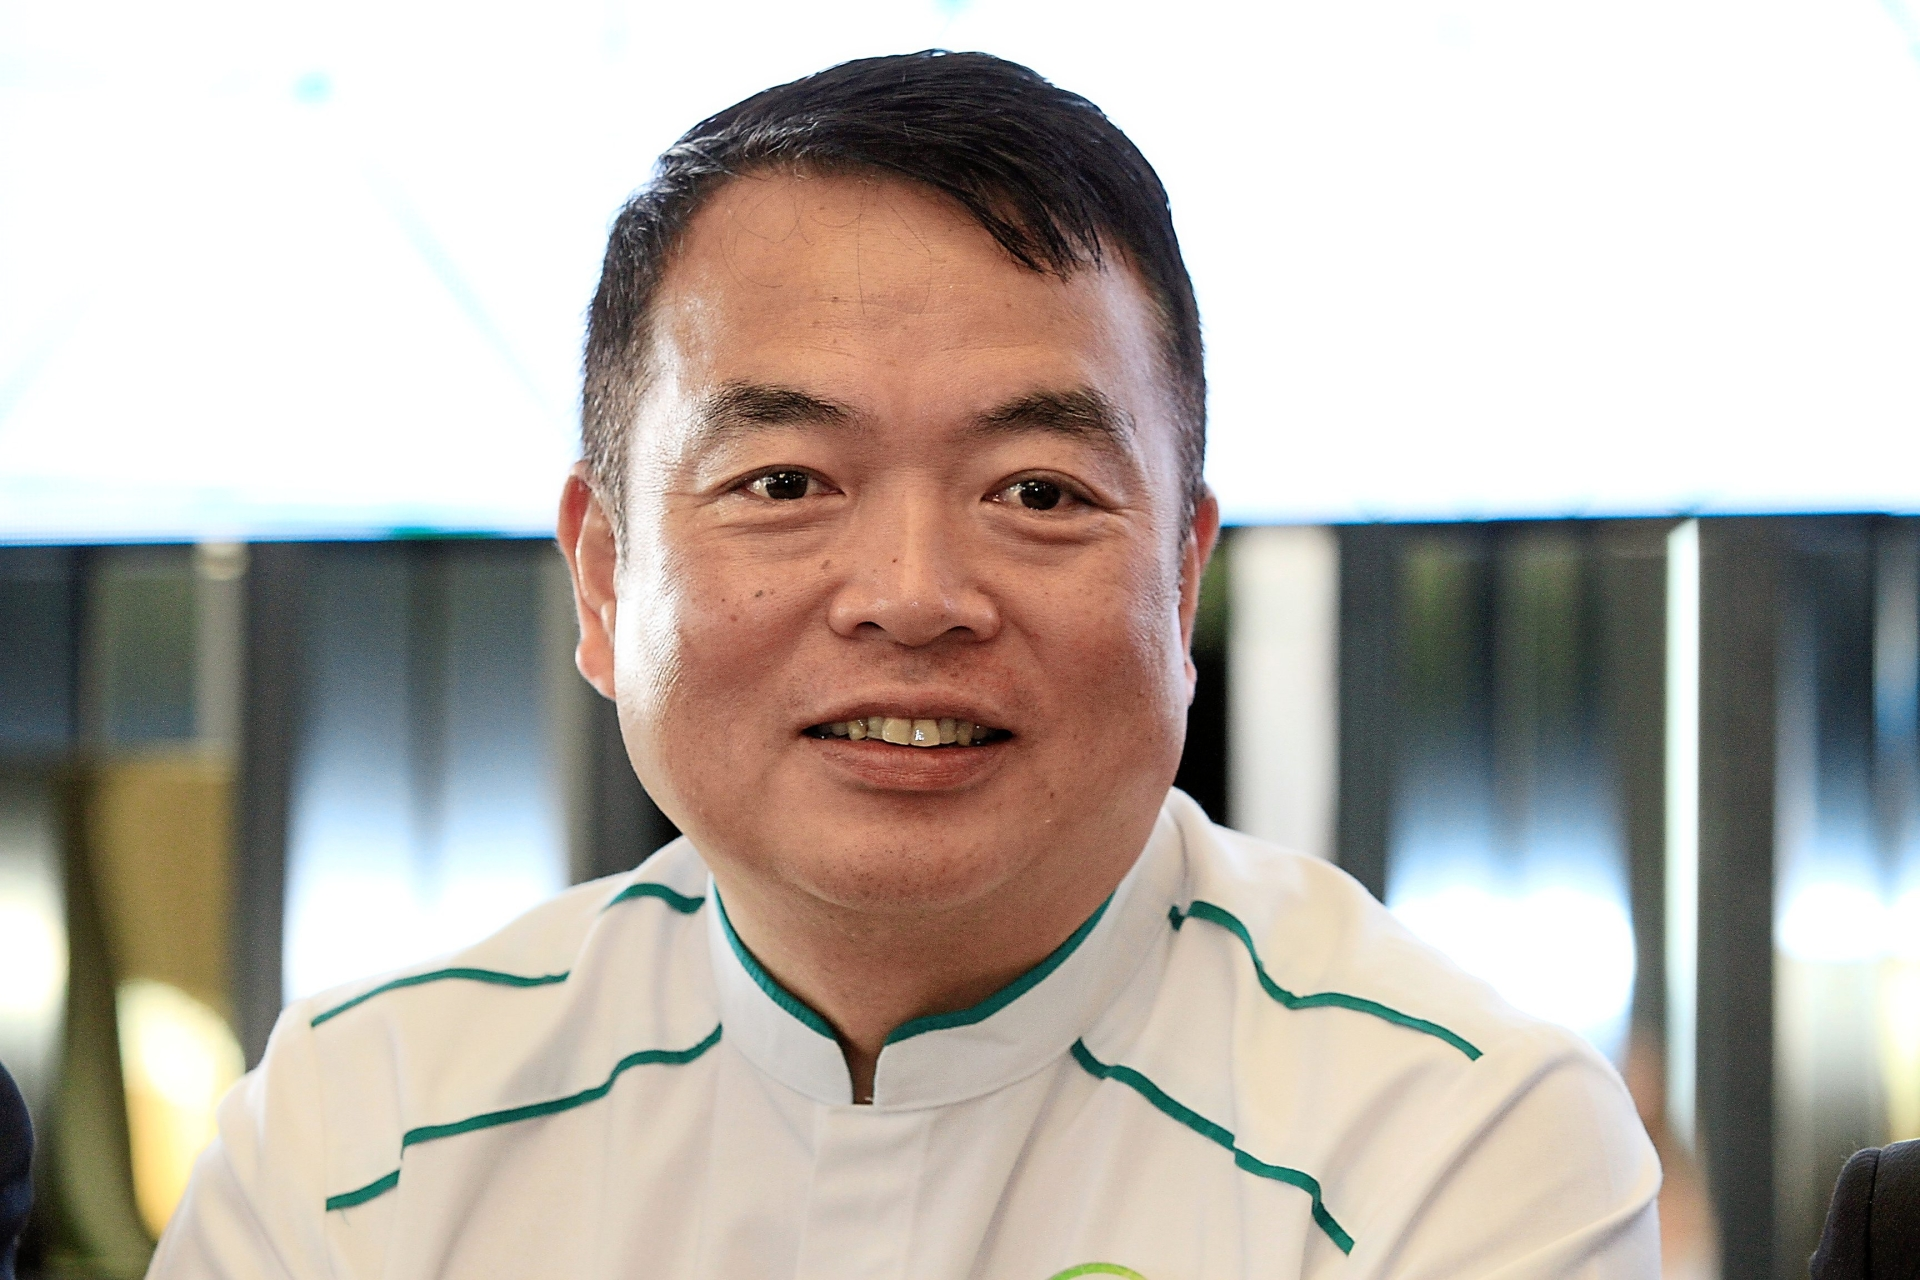 """EcoWorld Development Group president and chief executive officer Datuk Chang Khim Wah: """"Based on our discussions with PDT, we understand that one of their main aims for the proposed development is to meet the homeownership aspirations of the M40 group. This is something which EcoWorld is more than happy to support."""""""